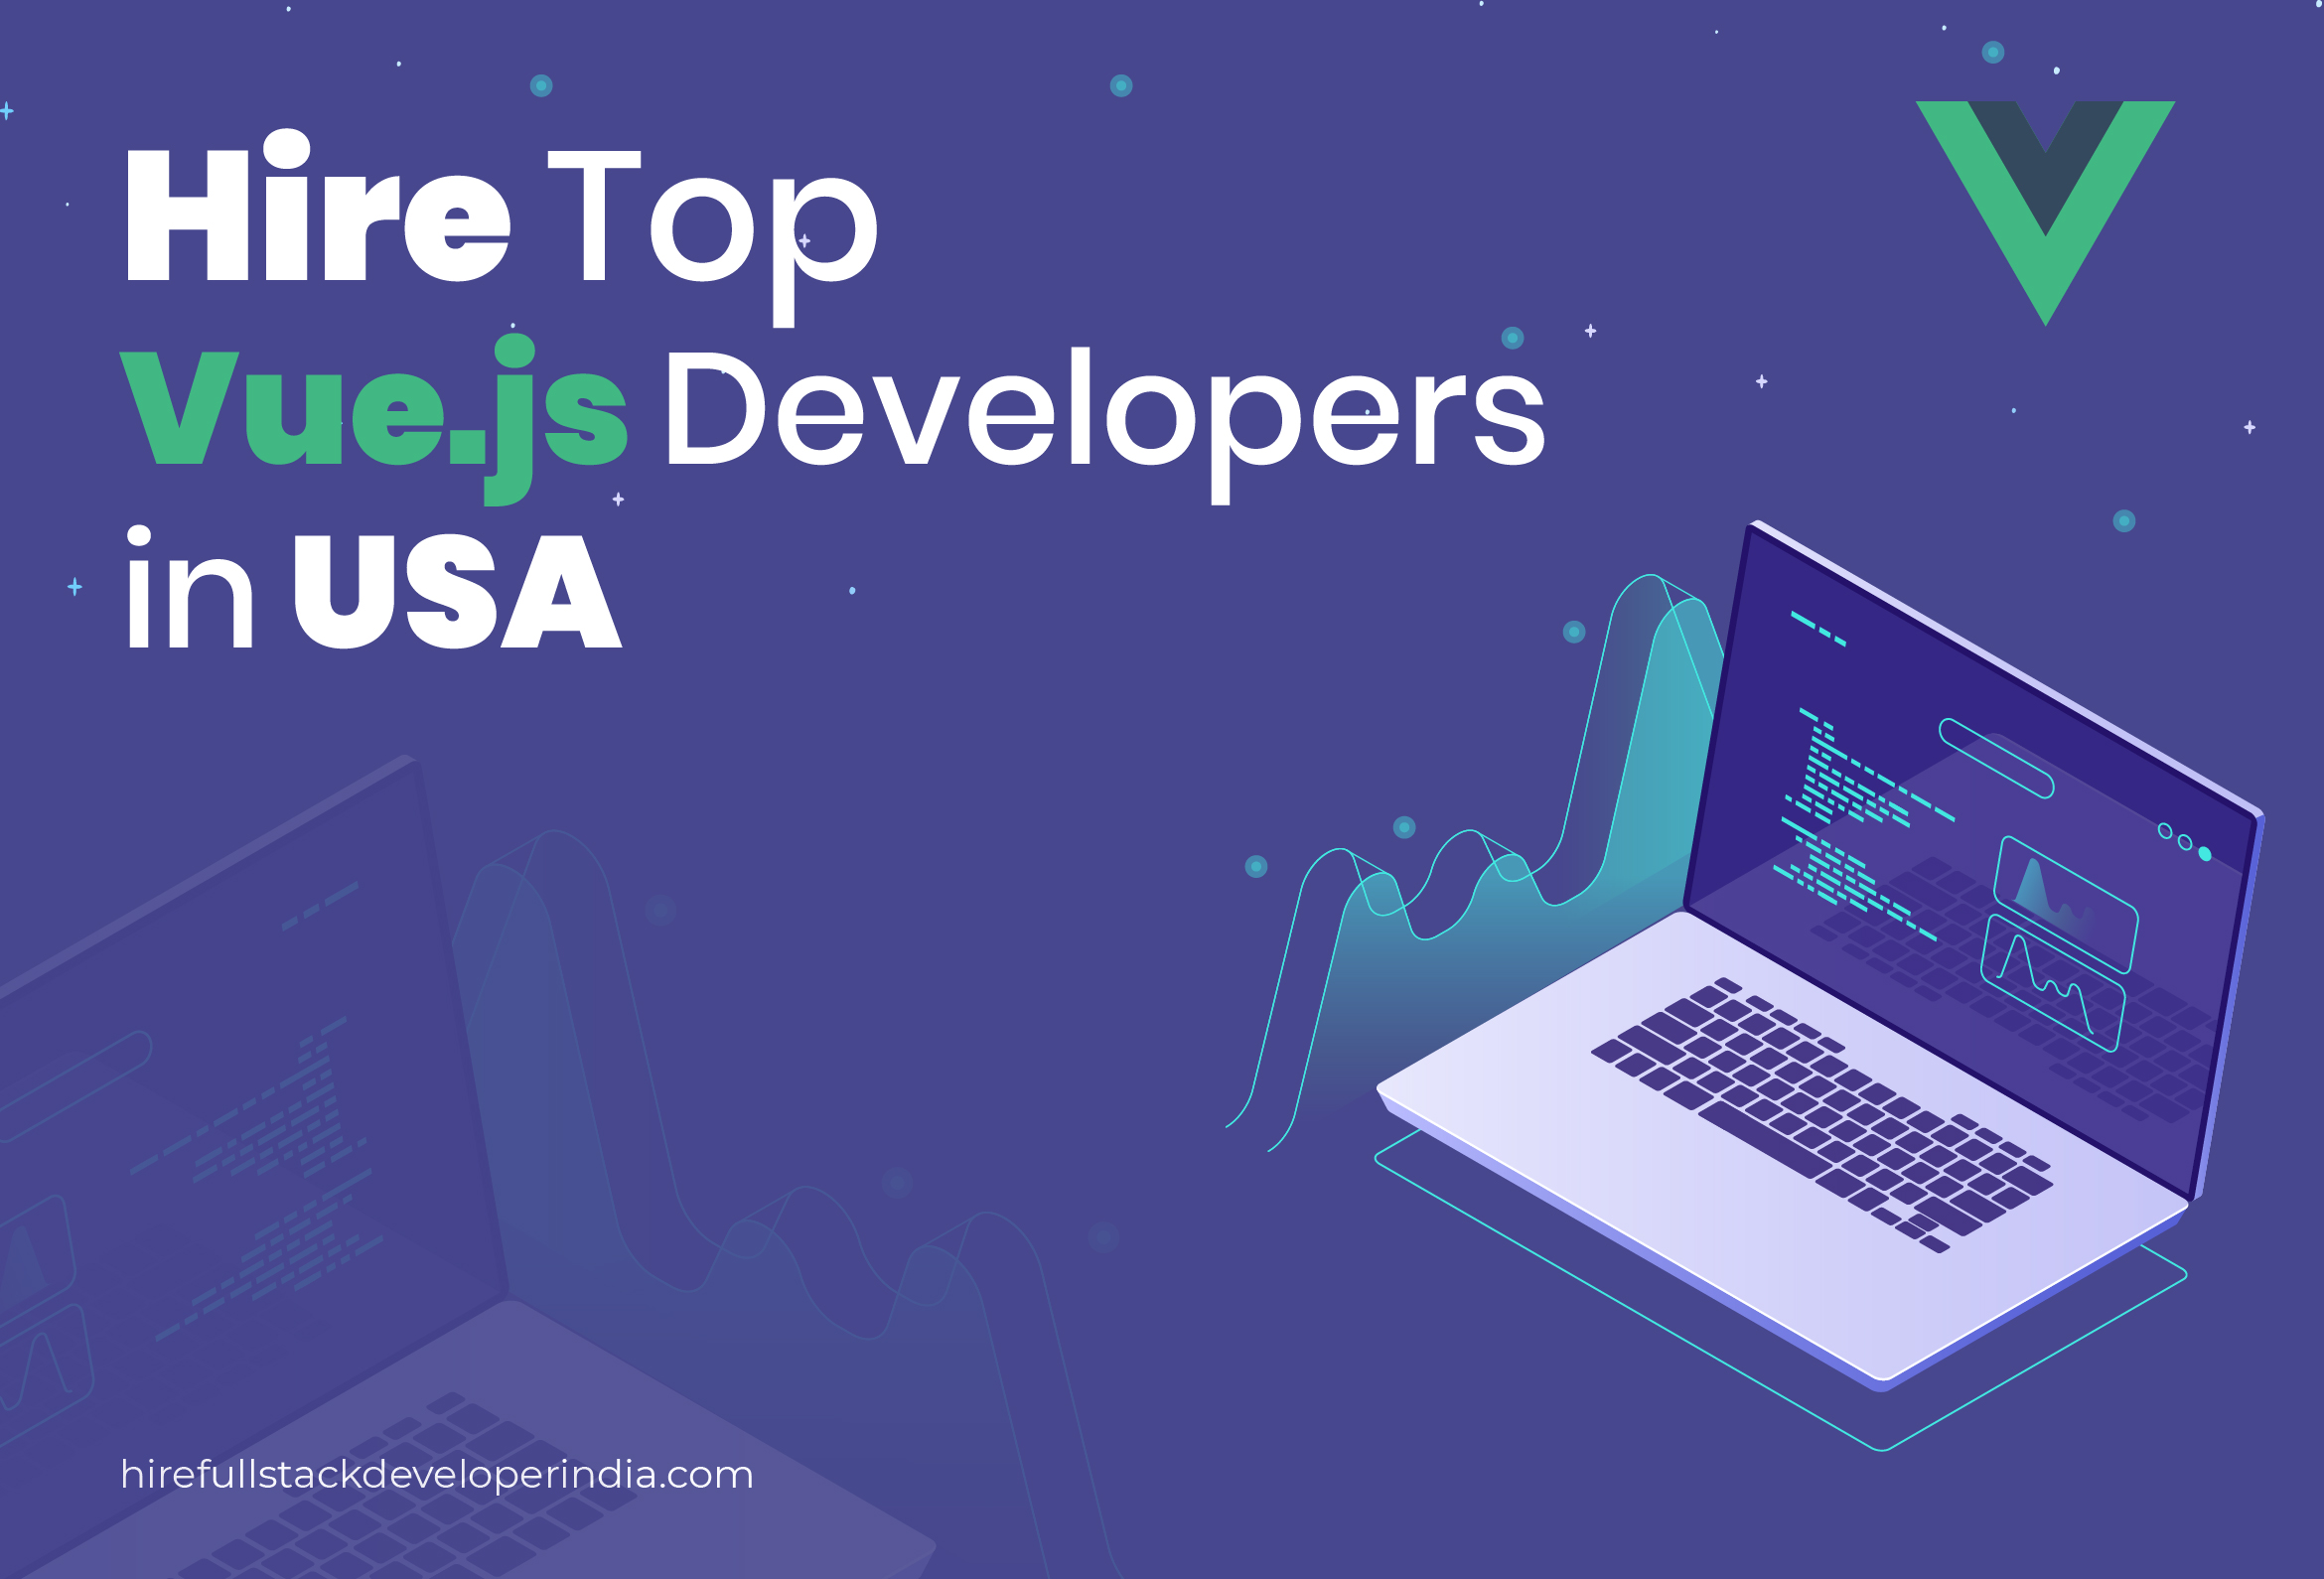 Top Vue.js Developers in USA